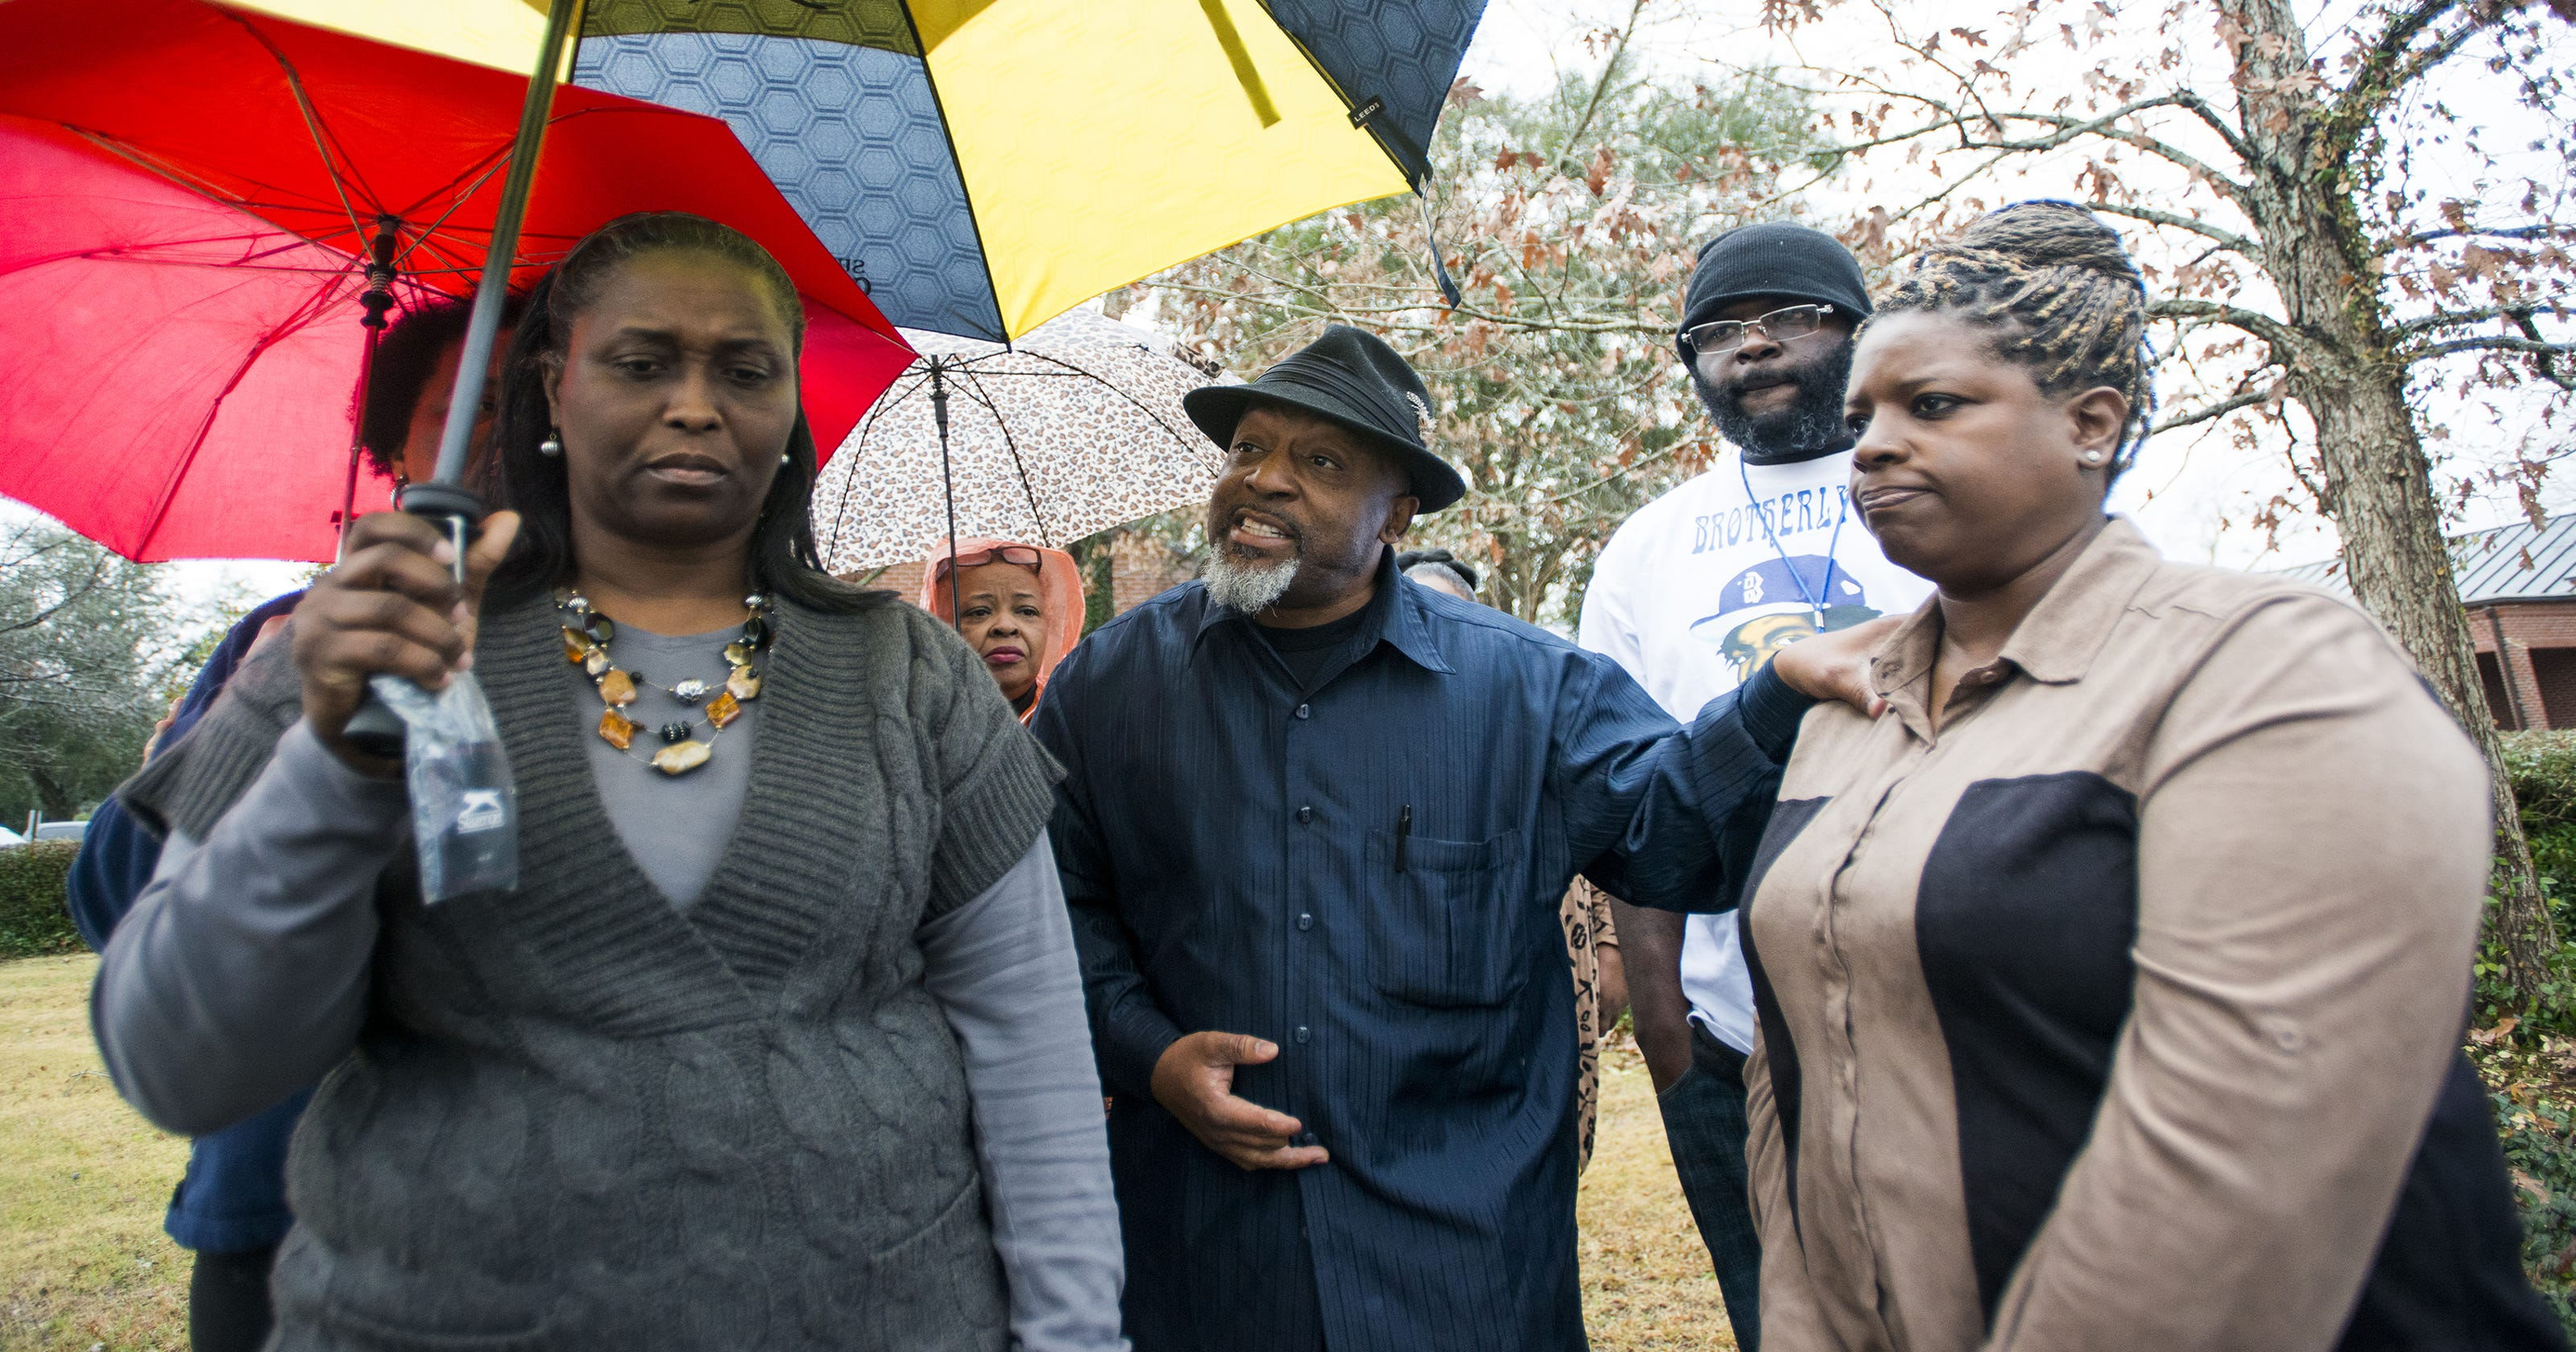 Jacqueline Massey talks with those protesting the shooting death of her son